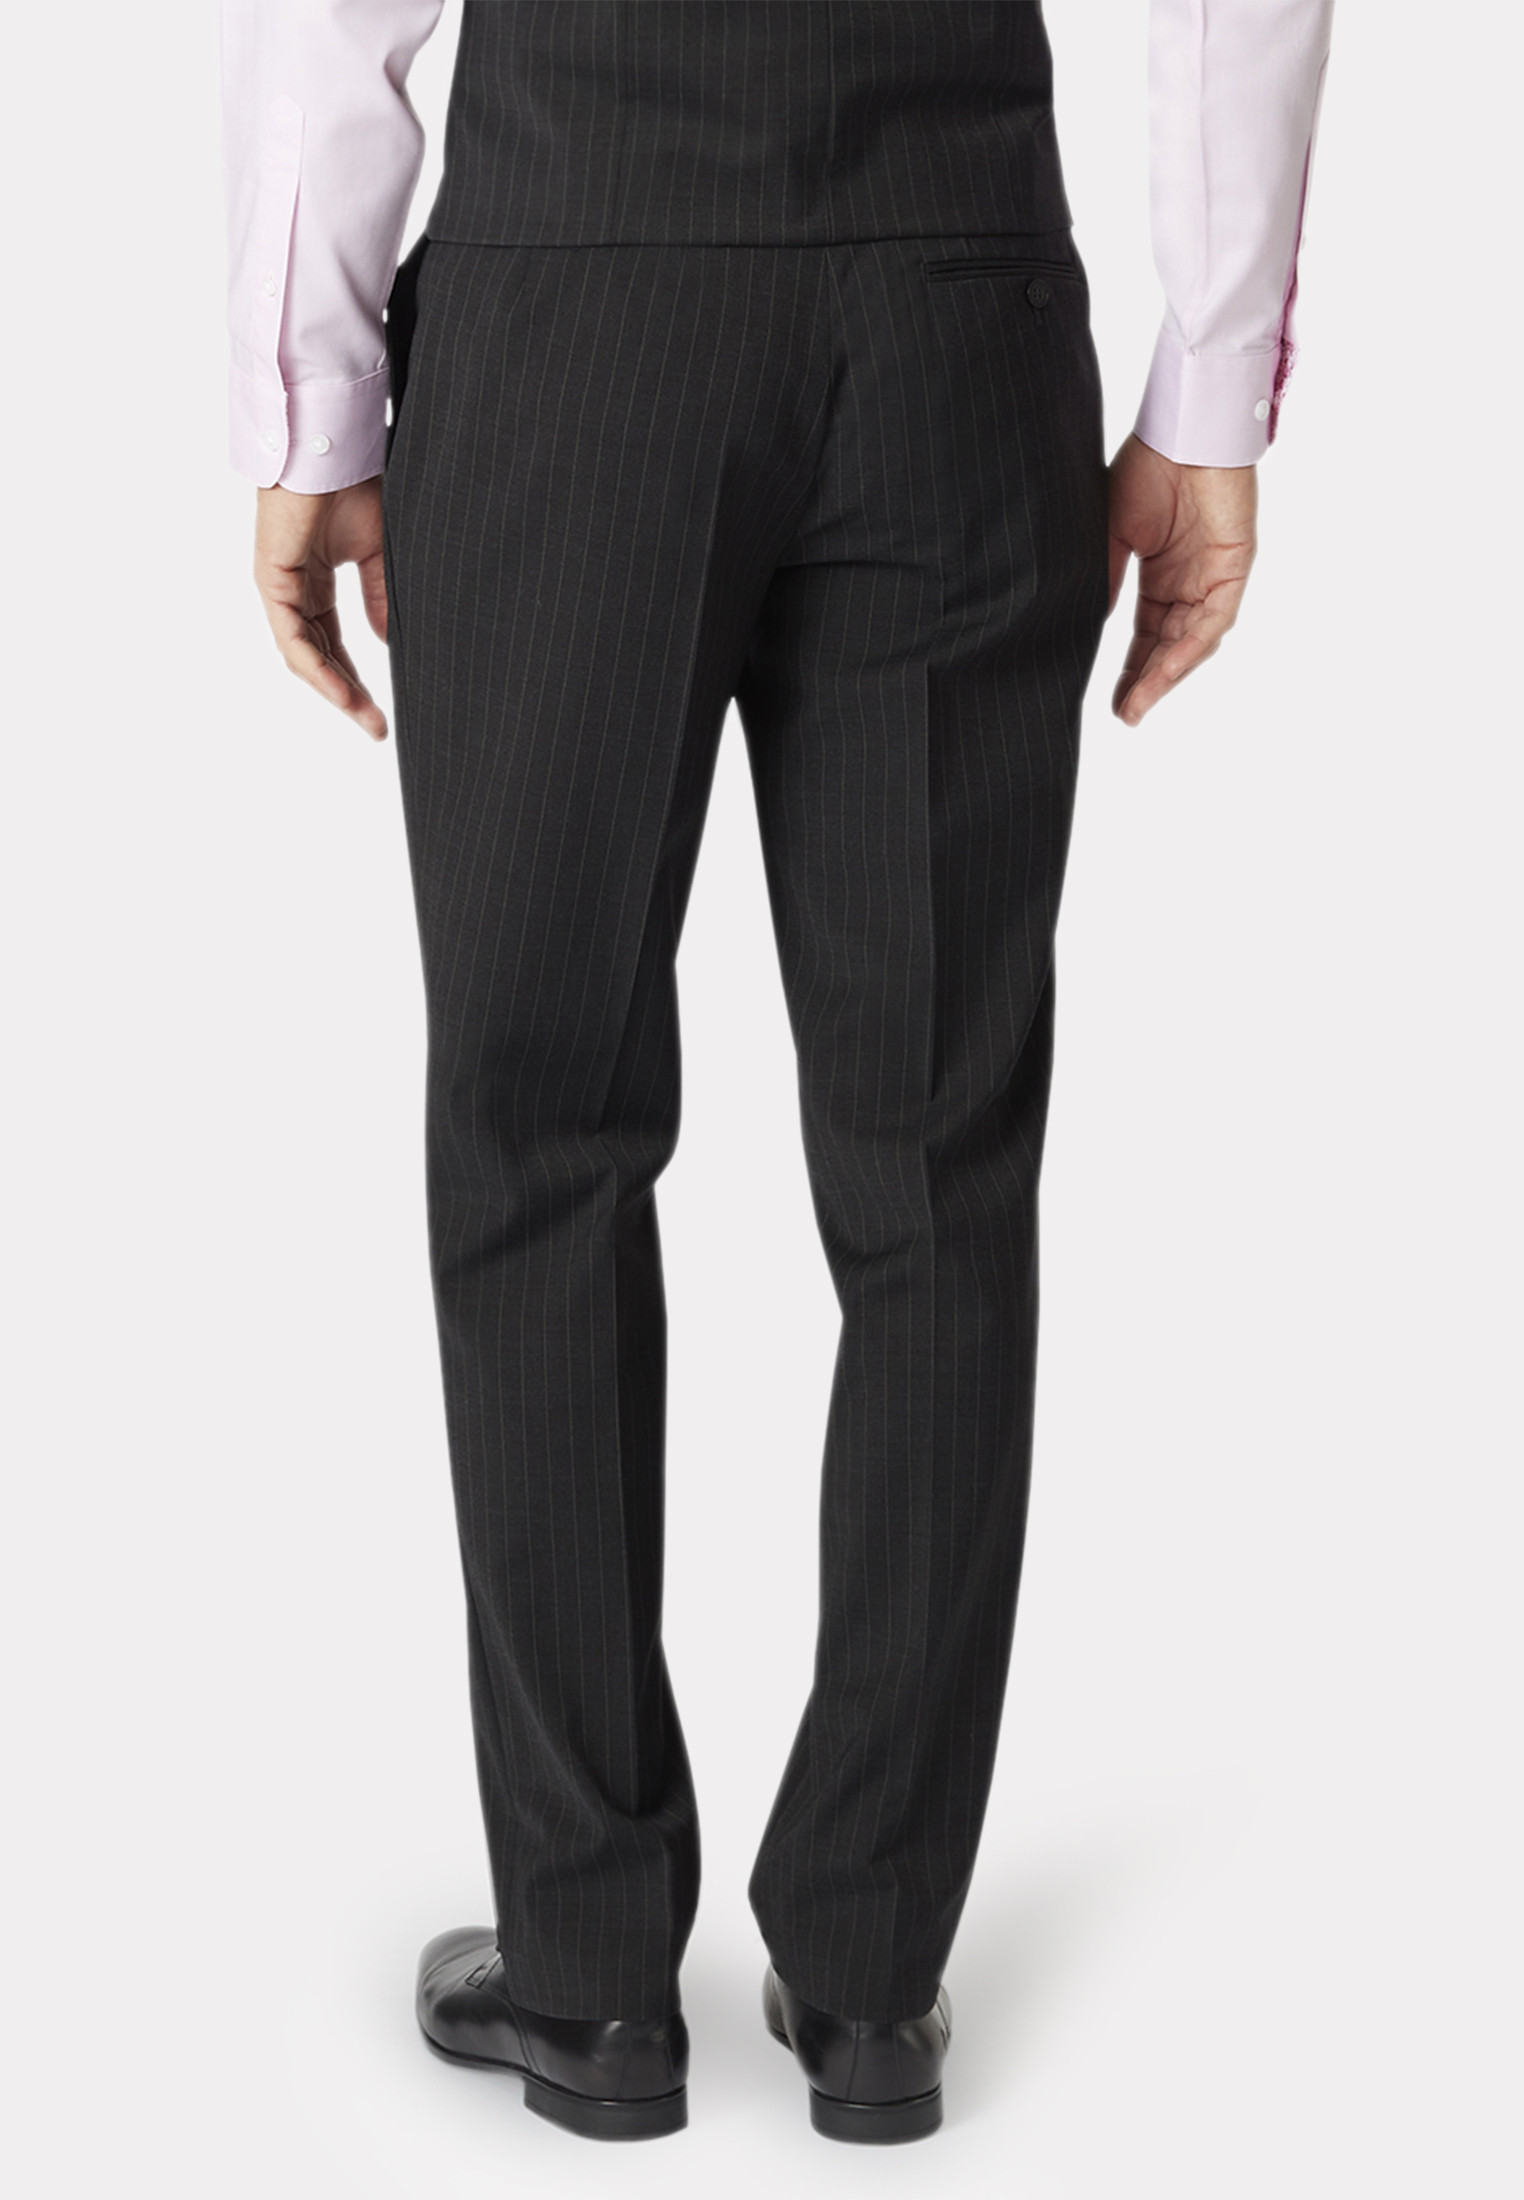 Avalino Charcoal Pinstripe Three Piece Travel Suit - Waistcoat Optional